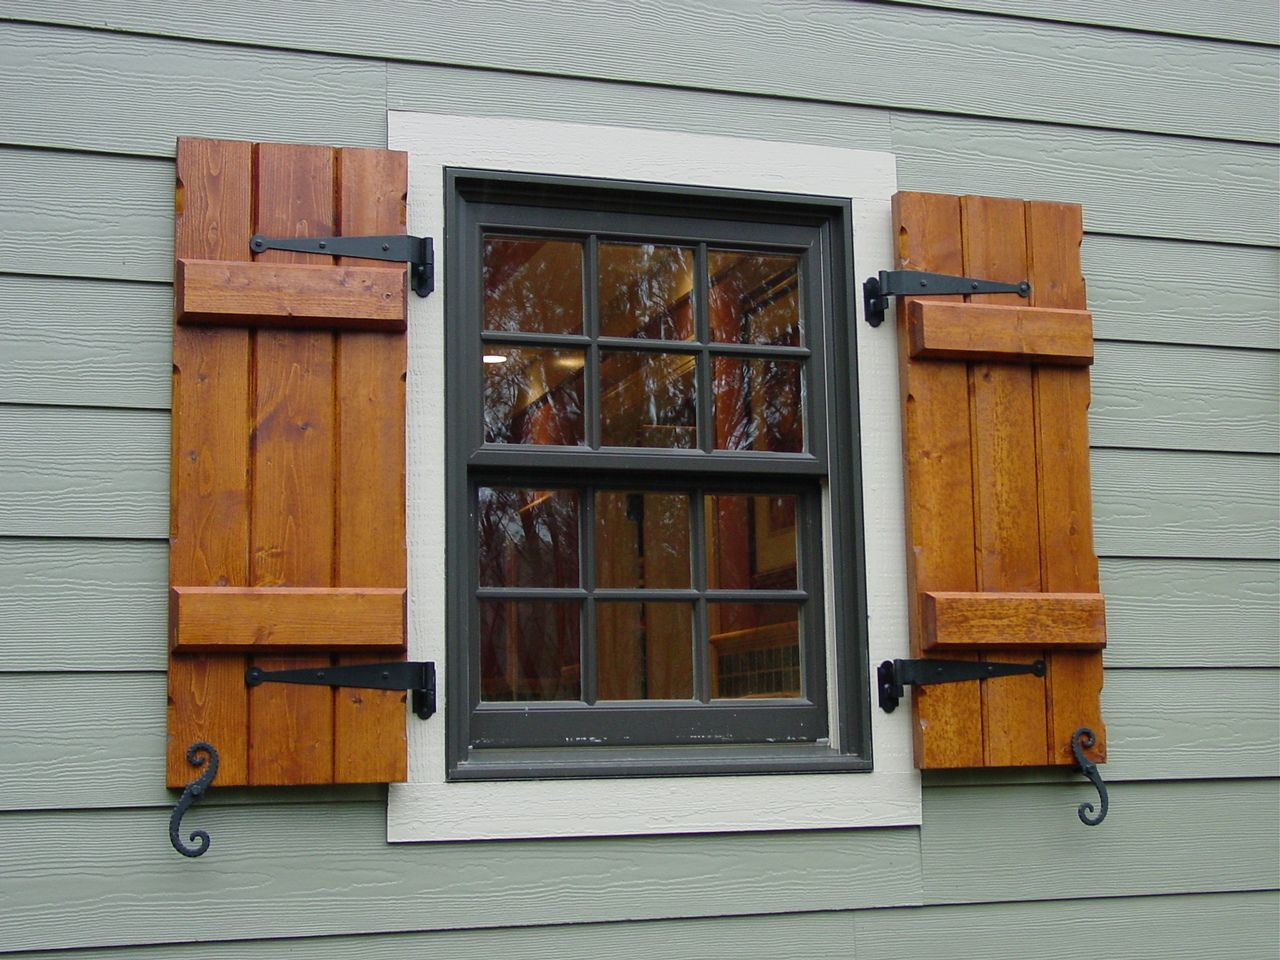 Exterior Shutters In Greenville Sc Wood Shutters Exterior Window Shutters Diy Wooden Window Shutters